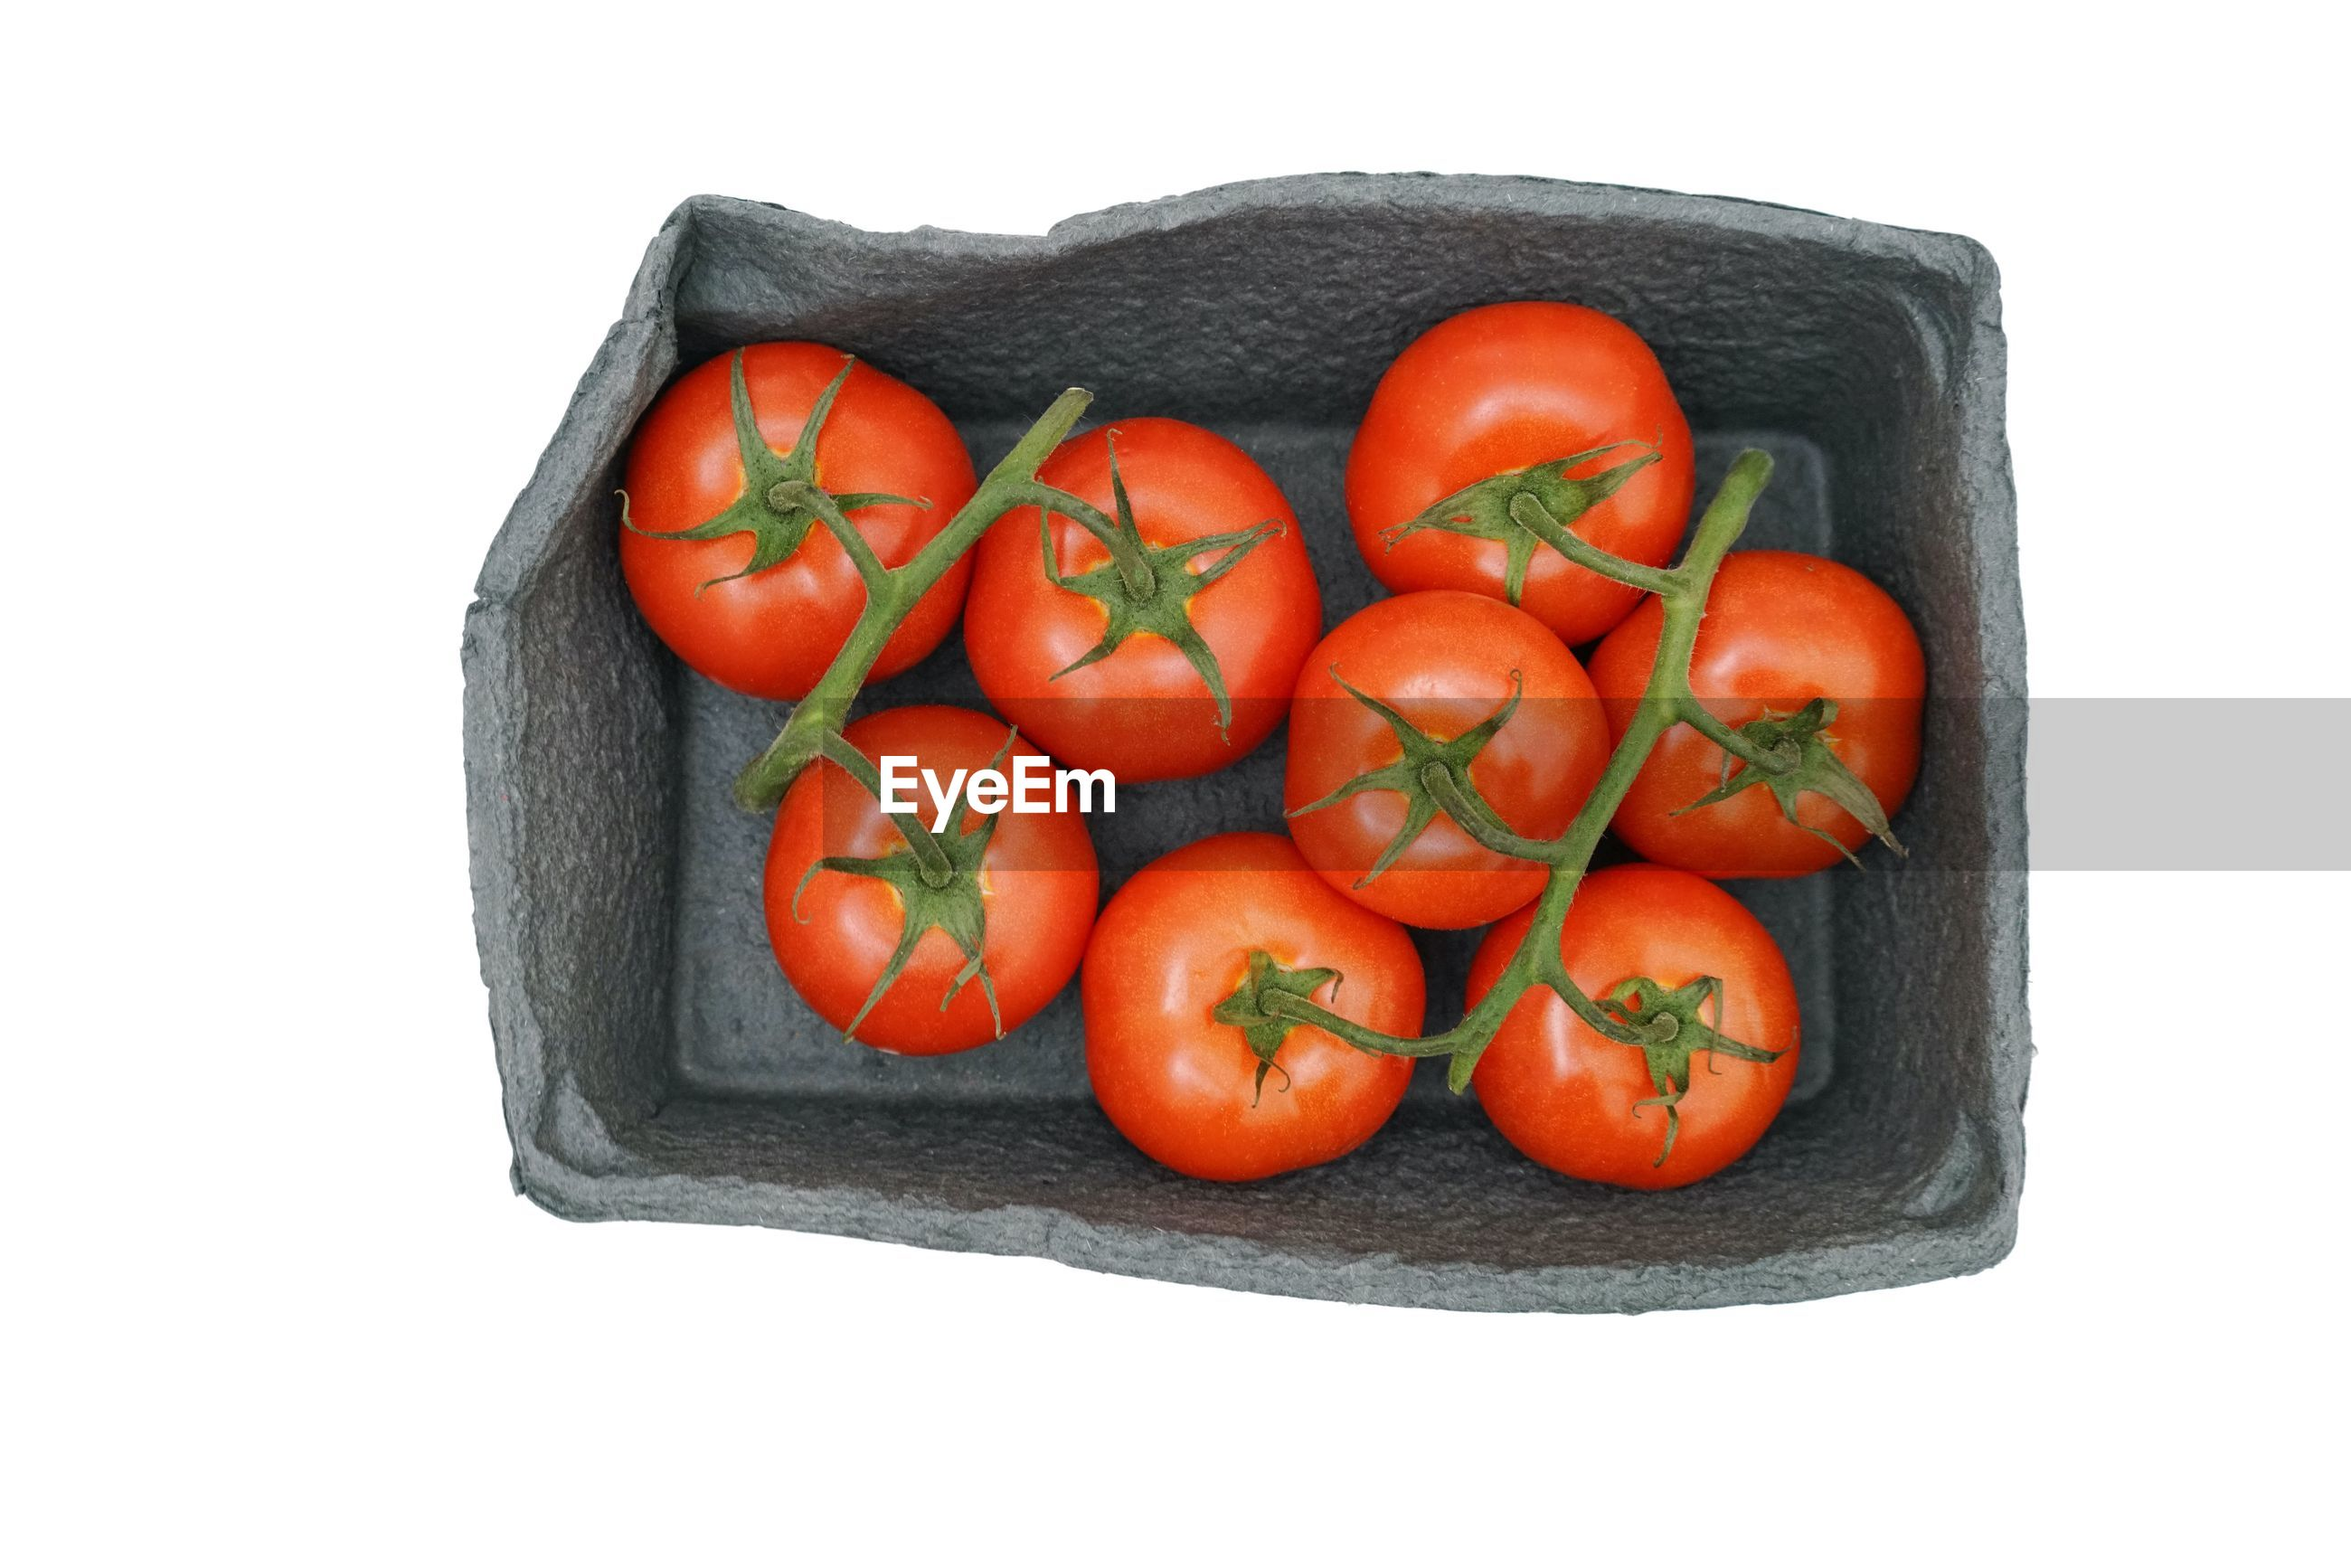 HIGH ANGLE VIEW OF TOMATOES AGAINST RED BACKGROUND